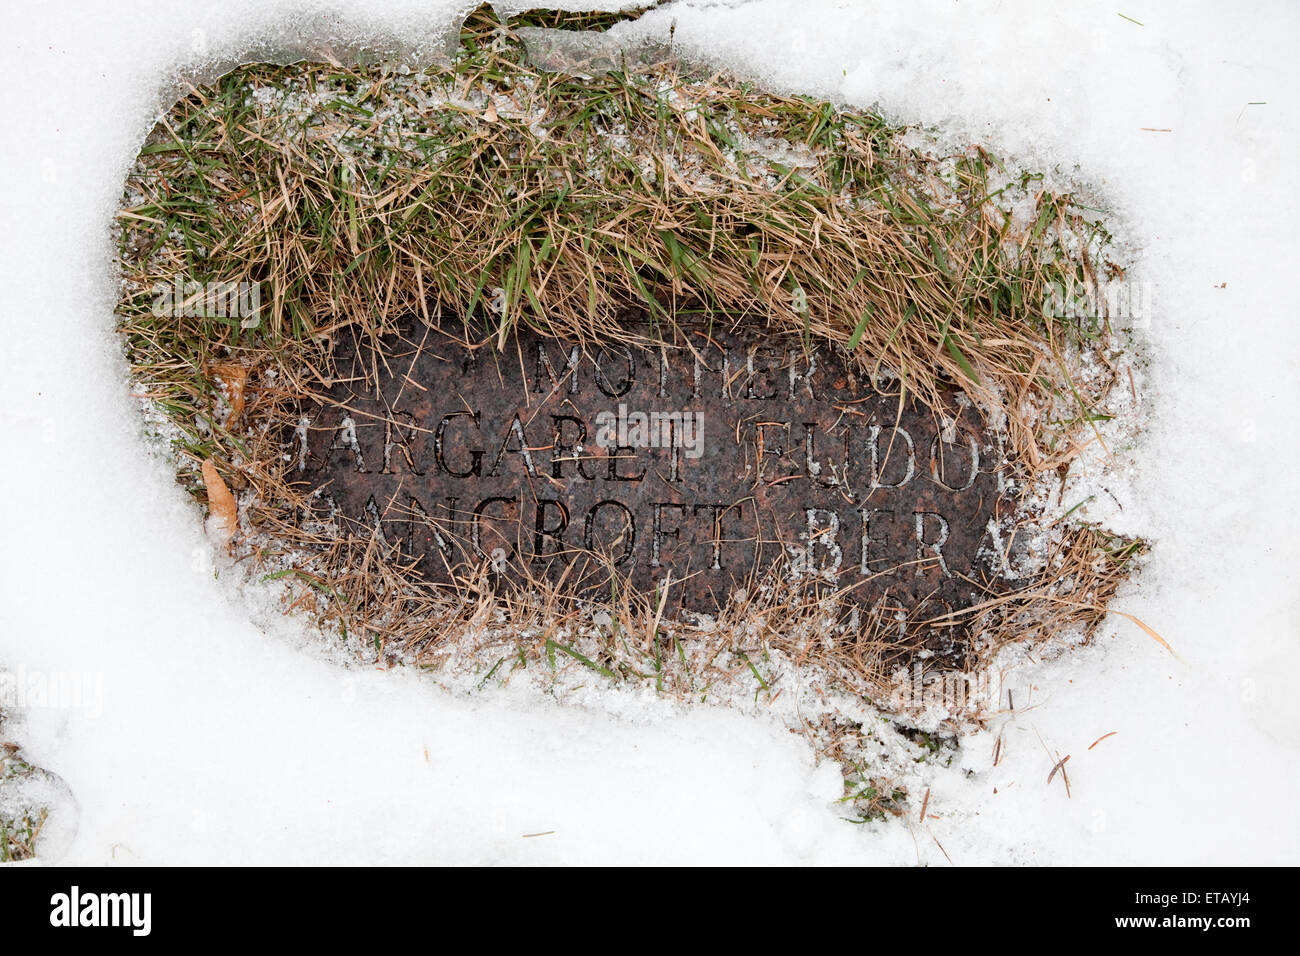 Mother's tombstone cleared of snow and grass to make visible. Lakewood Cemetery Minneapolis Minnesota MN USA - Stock Image